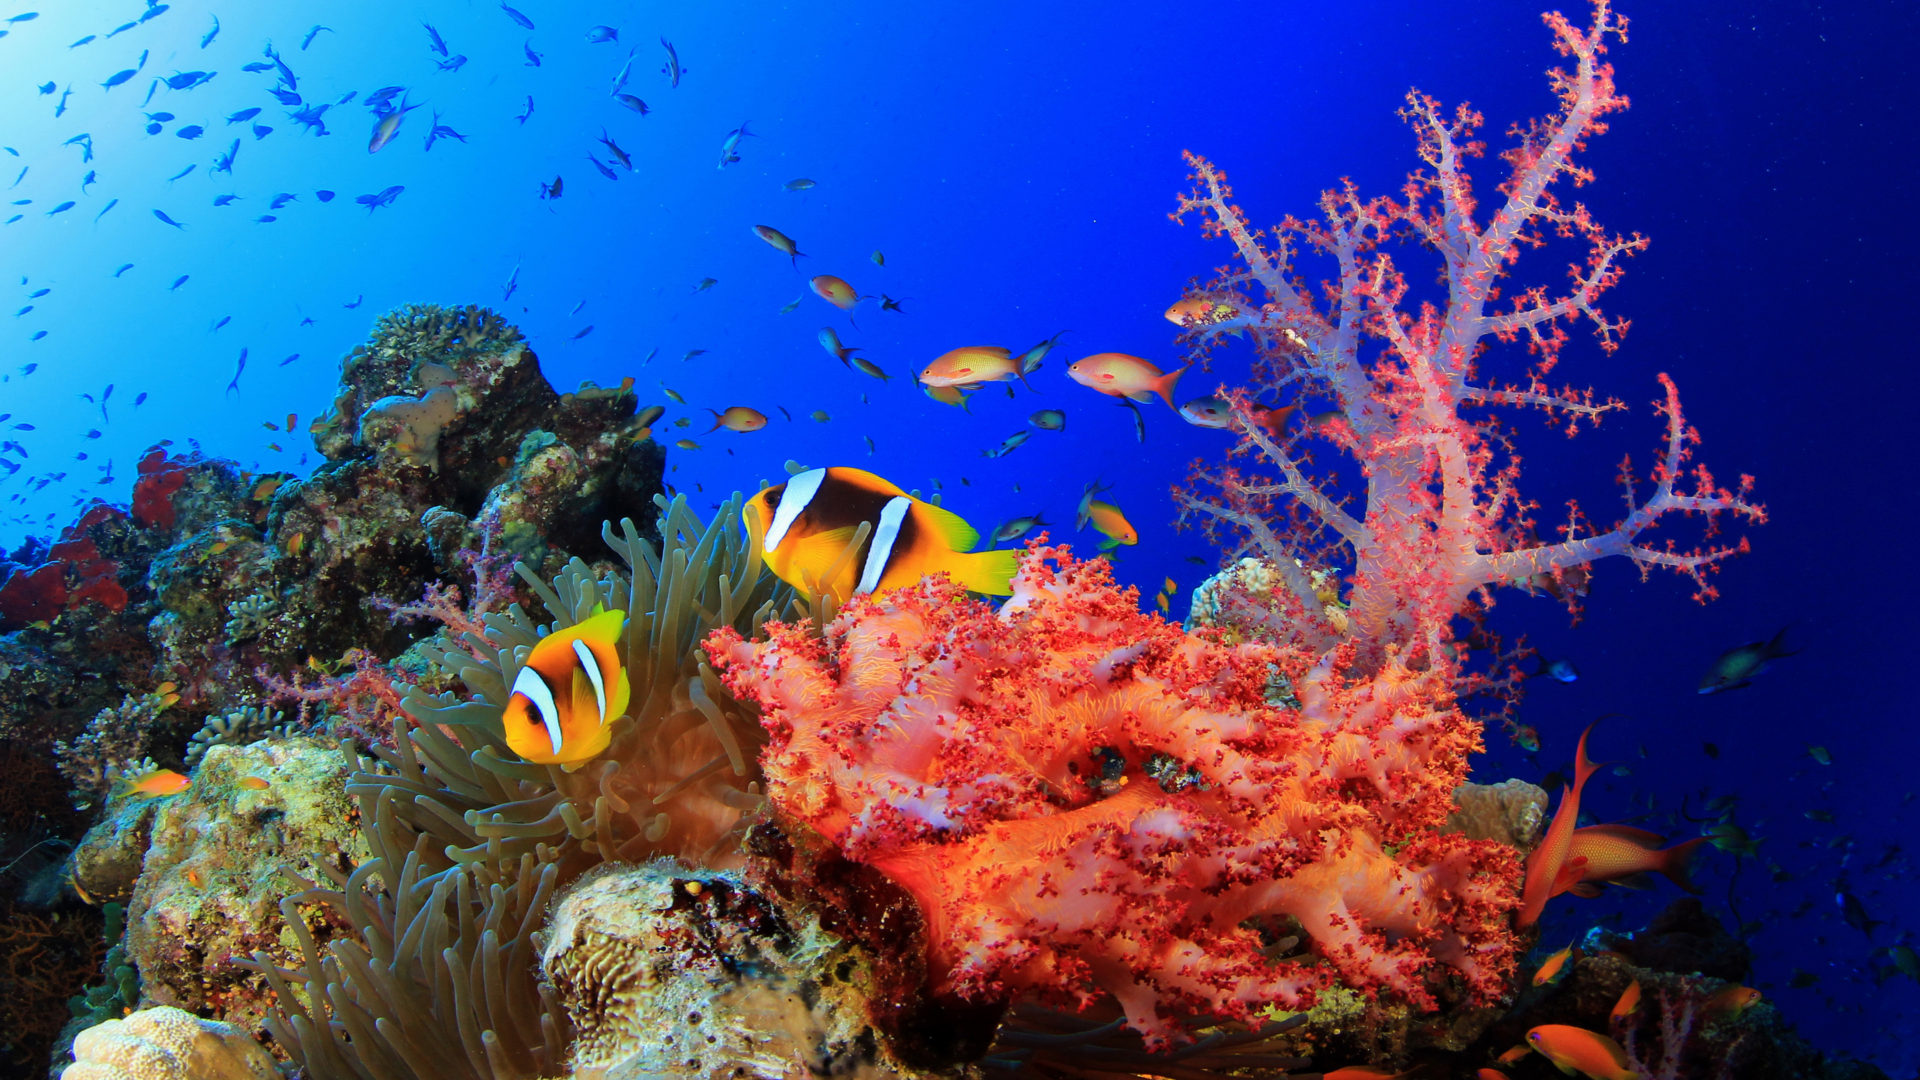 Tropical Wallpaper Iphone X Underwater World Okean Corals Tropical Colorful Fish Hd